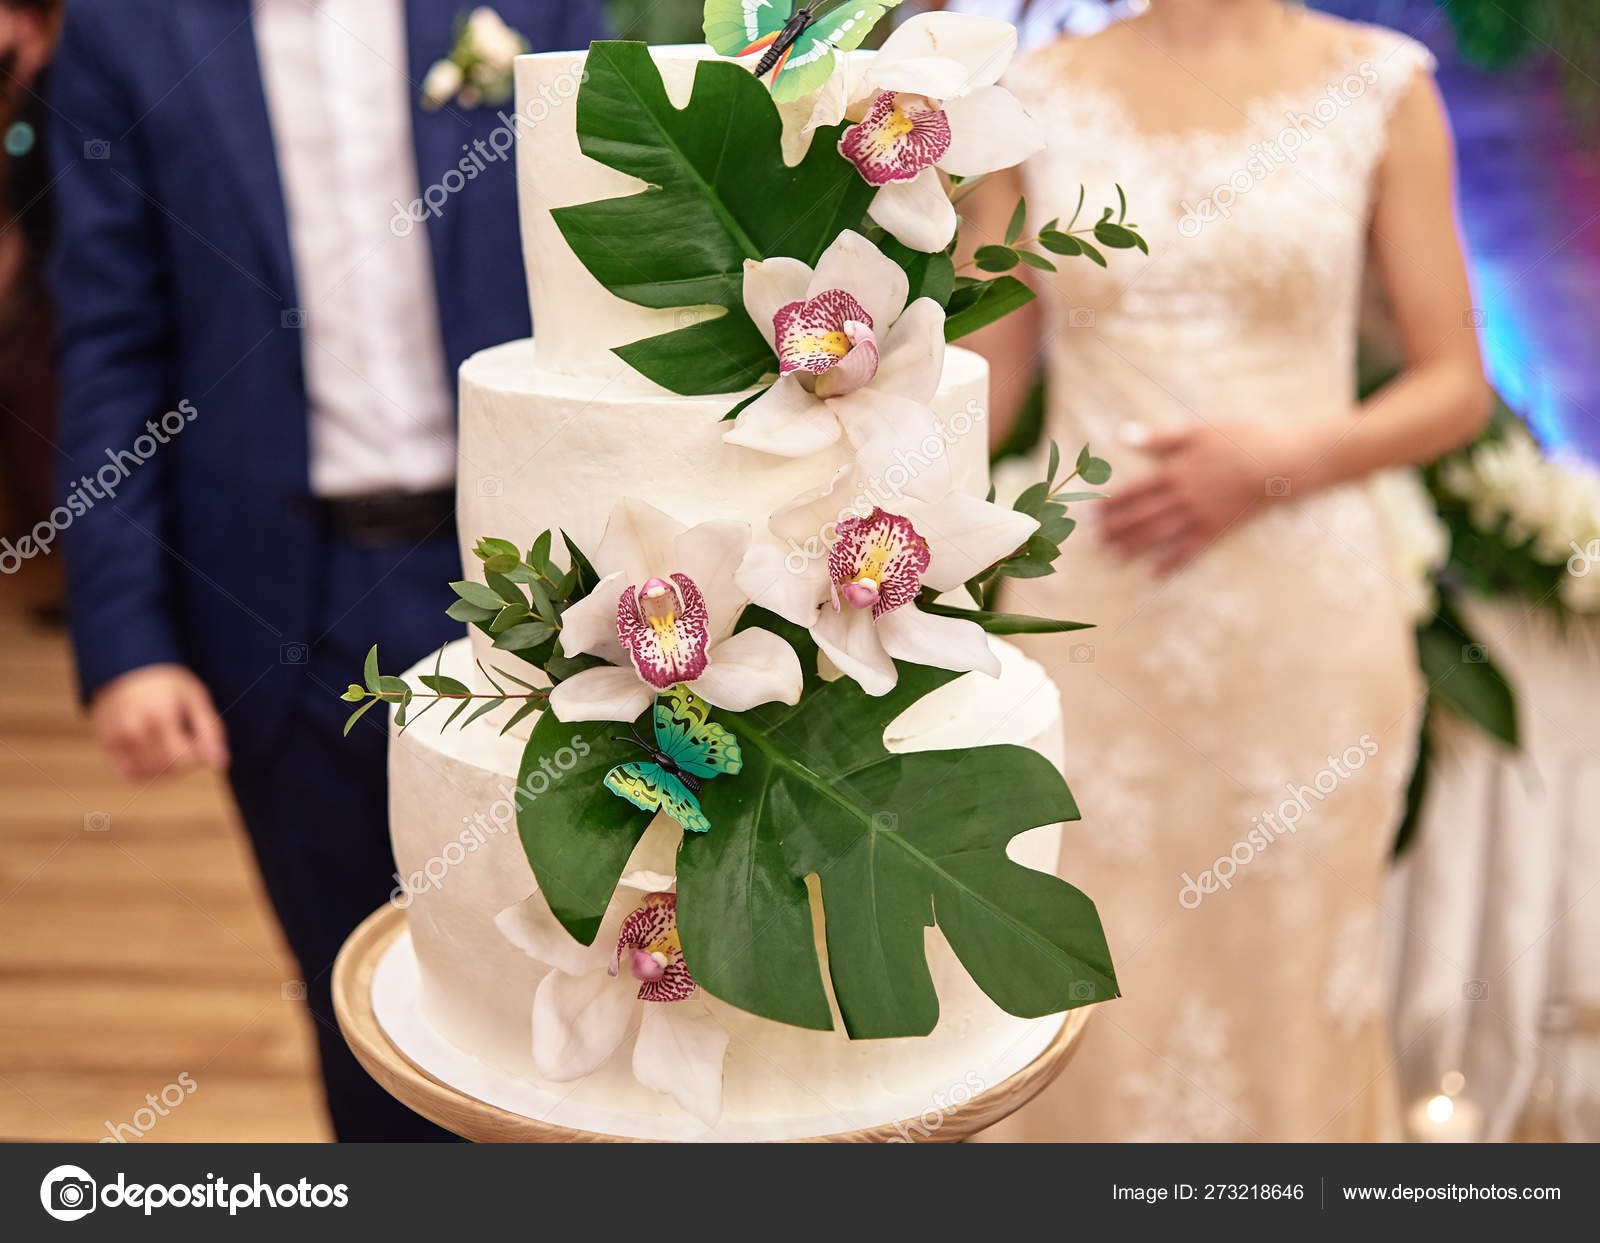 Elegant White Wedding Cake Decorated With Green Monstera Leaves Stock Photo C D Duda 273218646 Green little refreshing tropical palm leaf circular border. elegant white wedding cake decorated with green monstera leaves stock photo c d duda 273218646